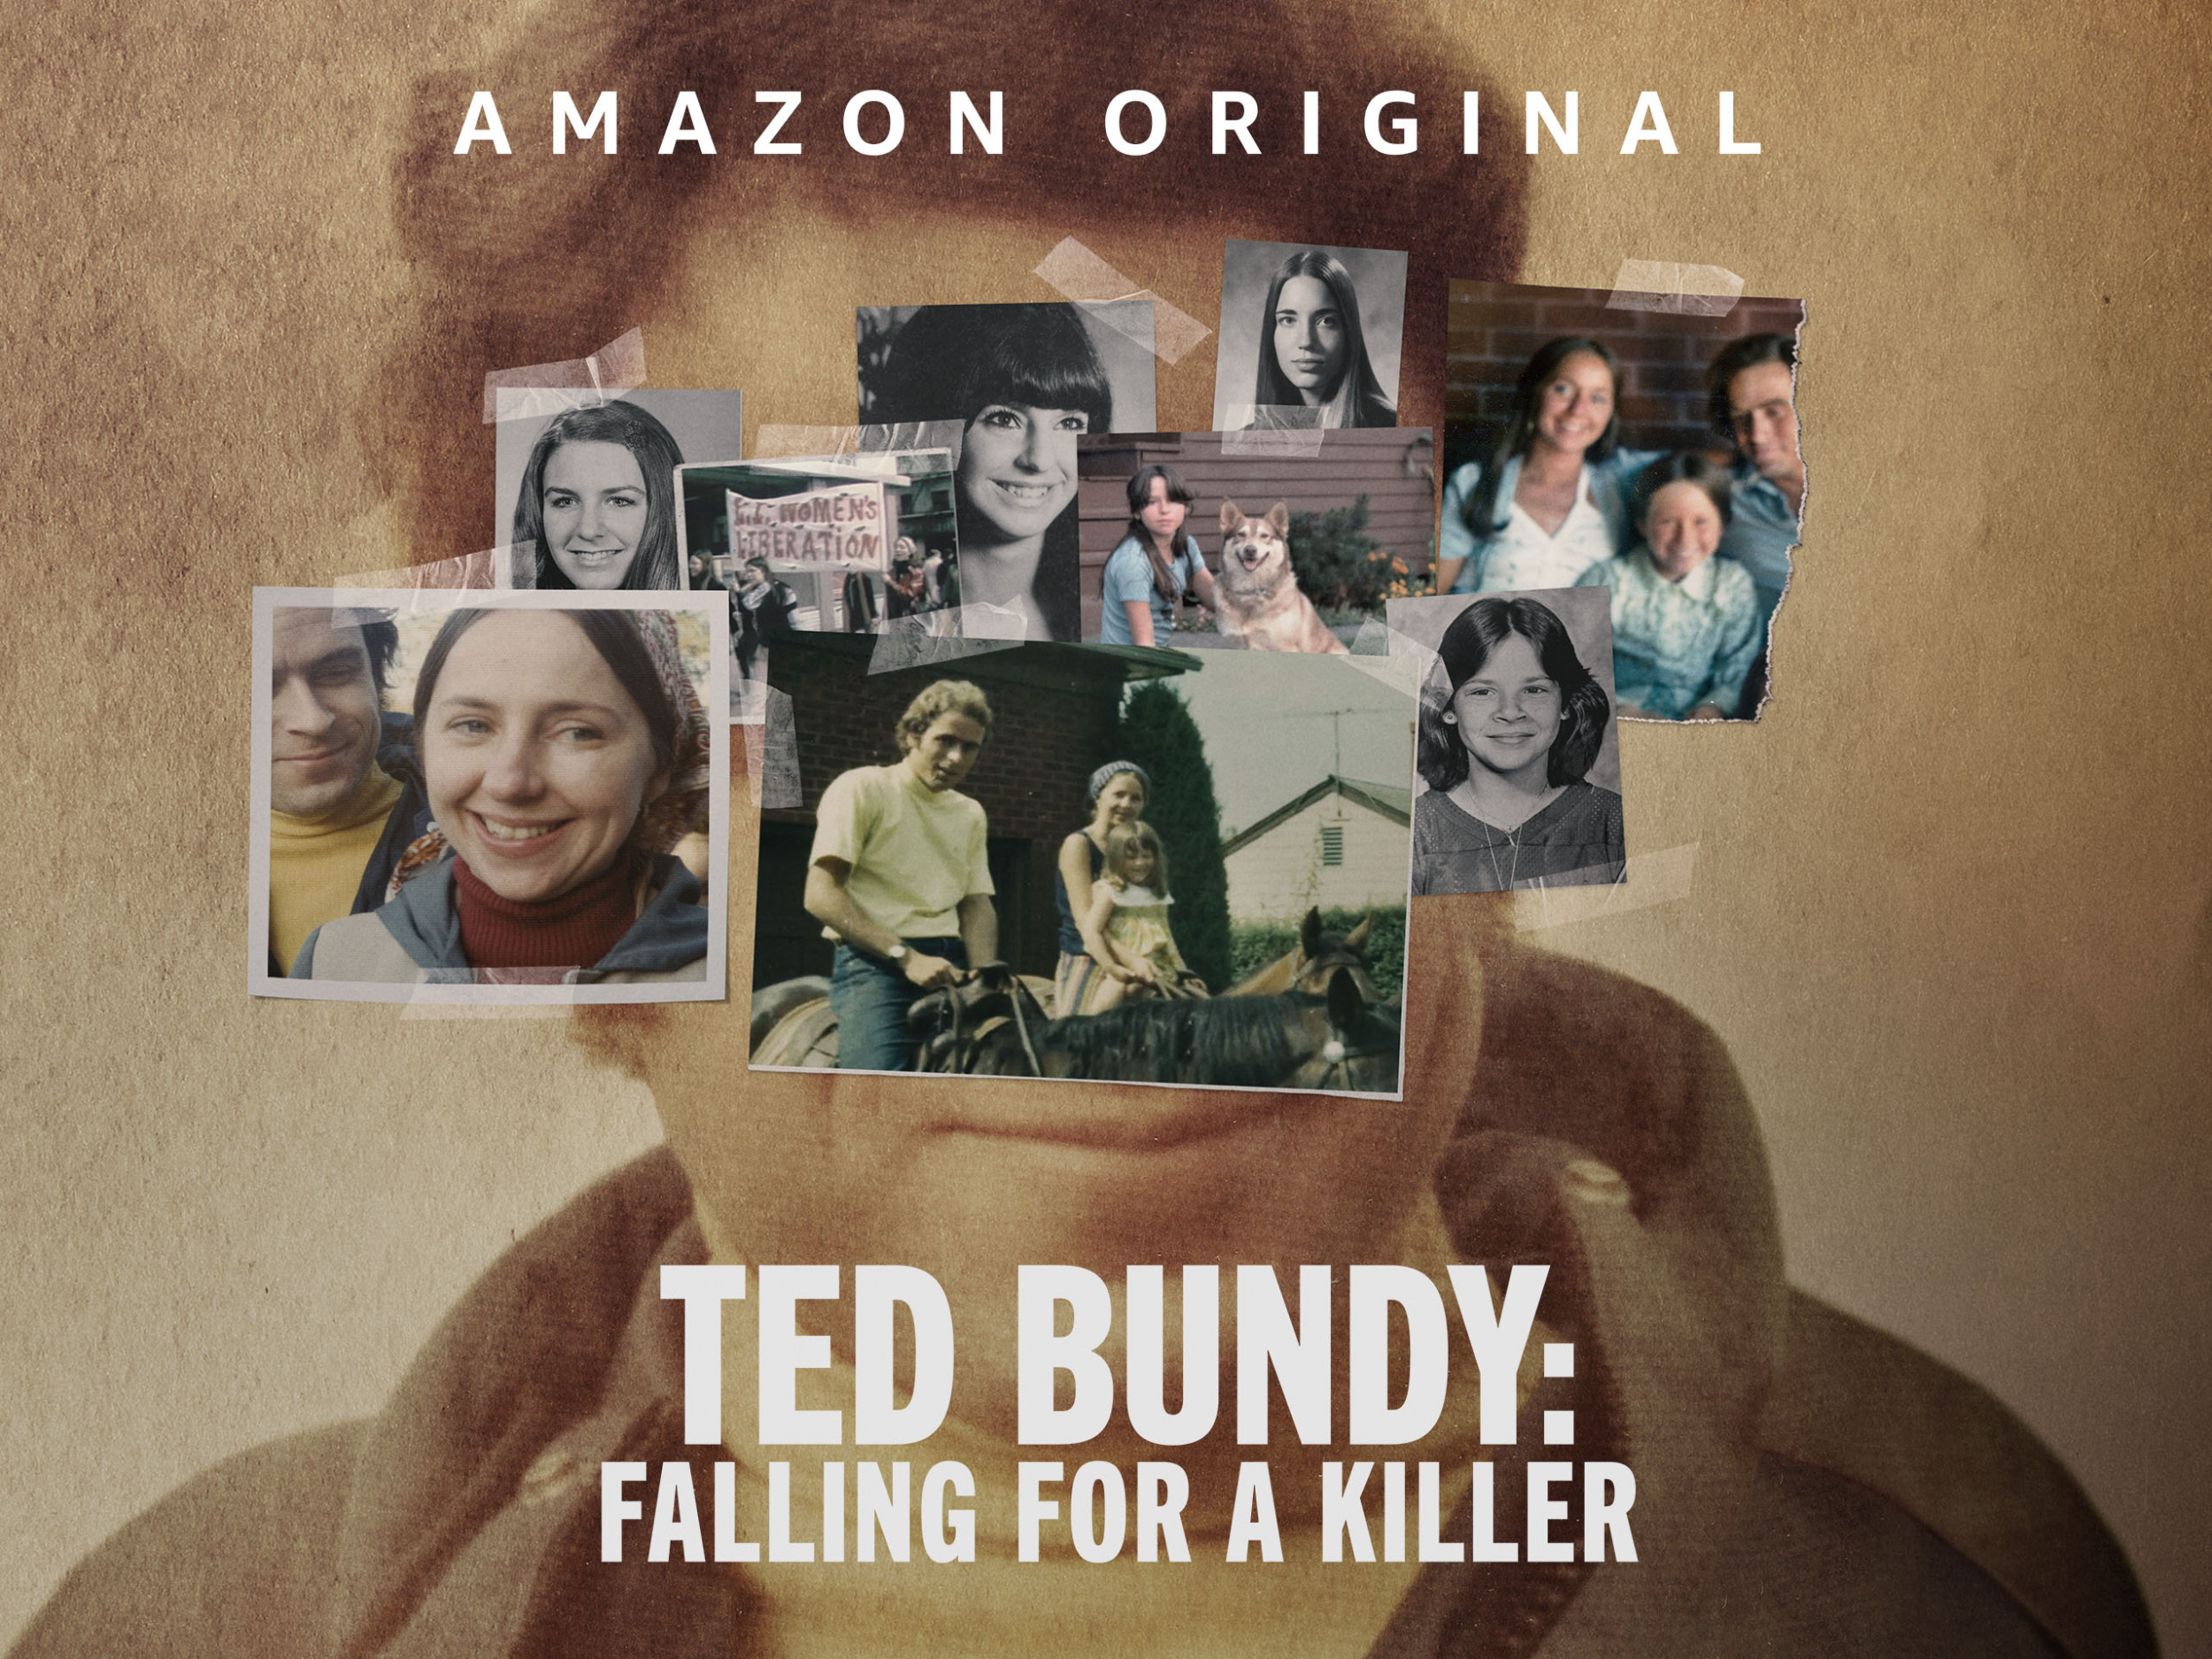 ted bundy: falling for a killer